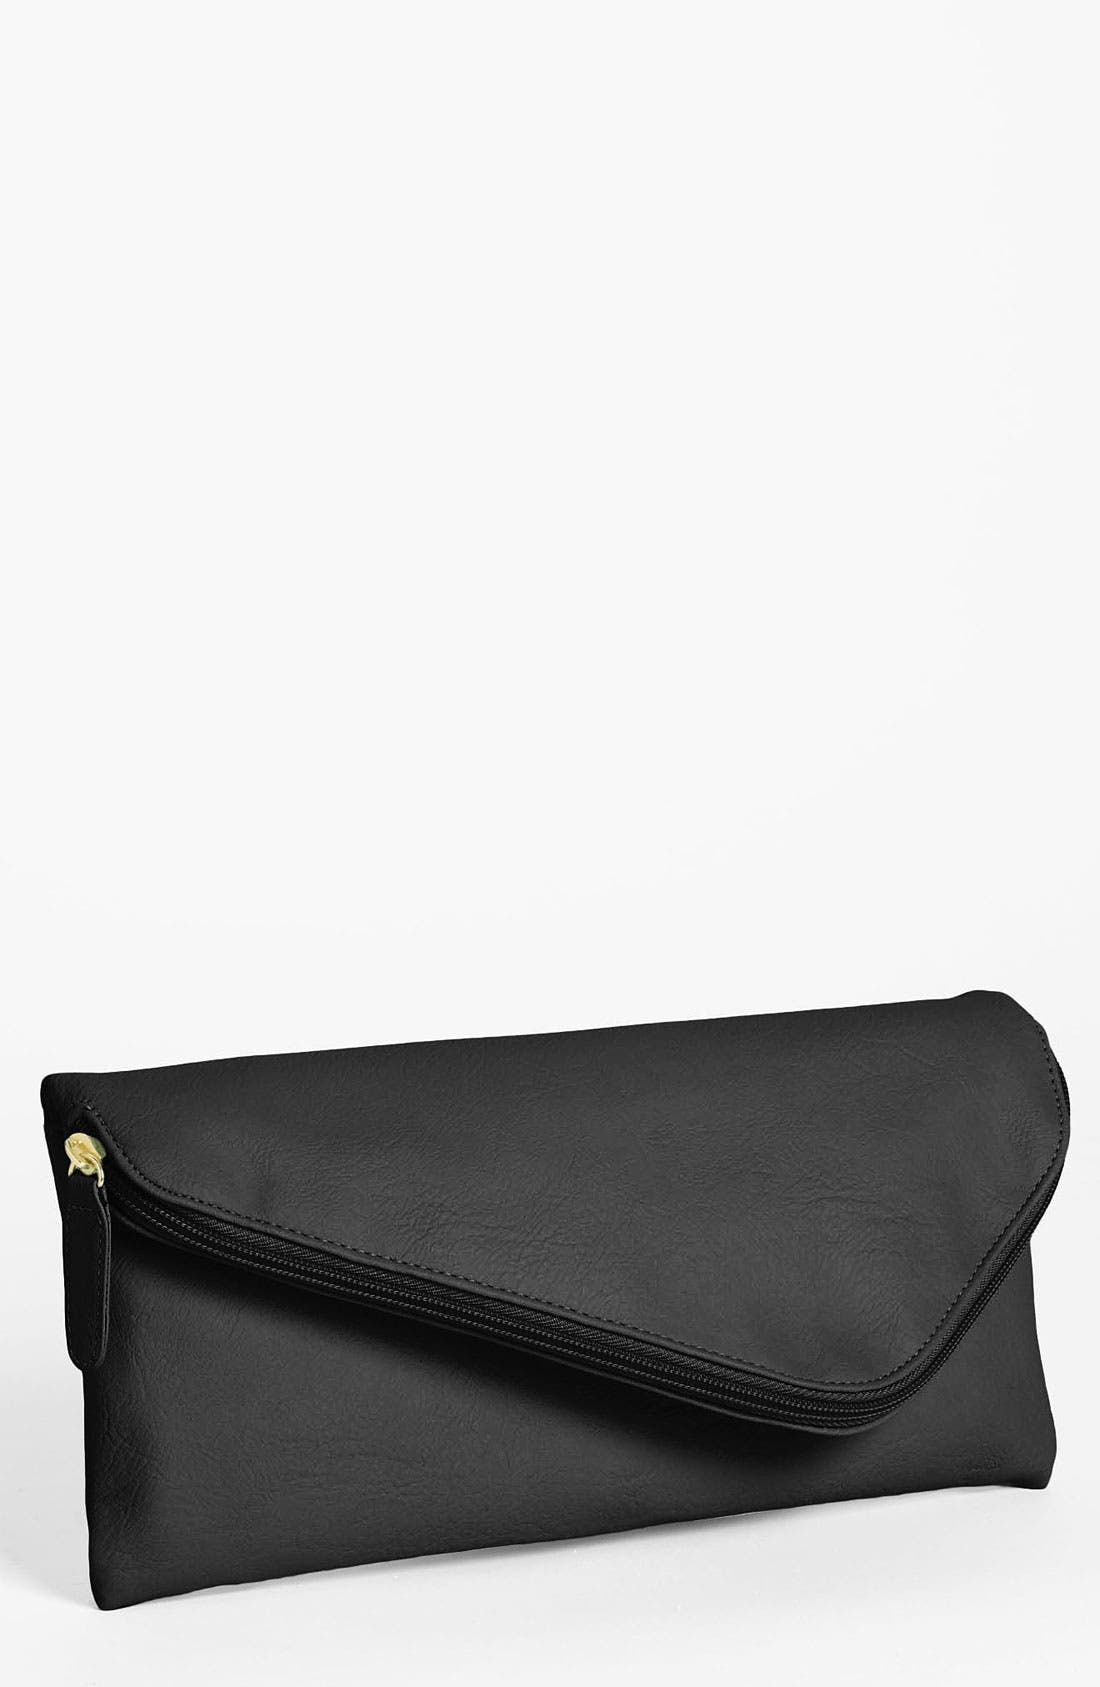 Alternate Image 1 Selected - Lulu Zip Top Envelope Clutch